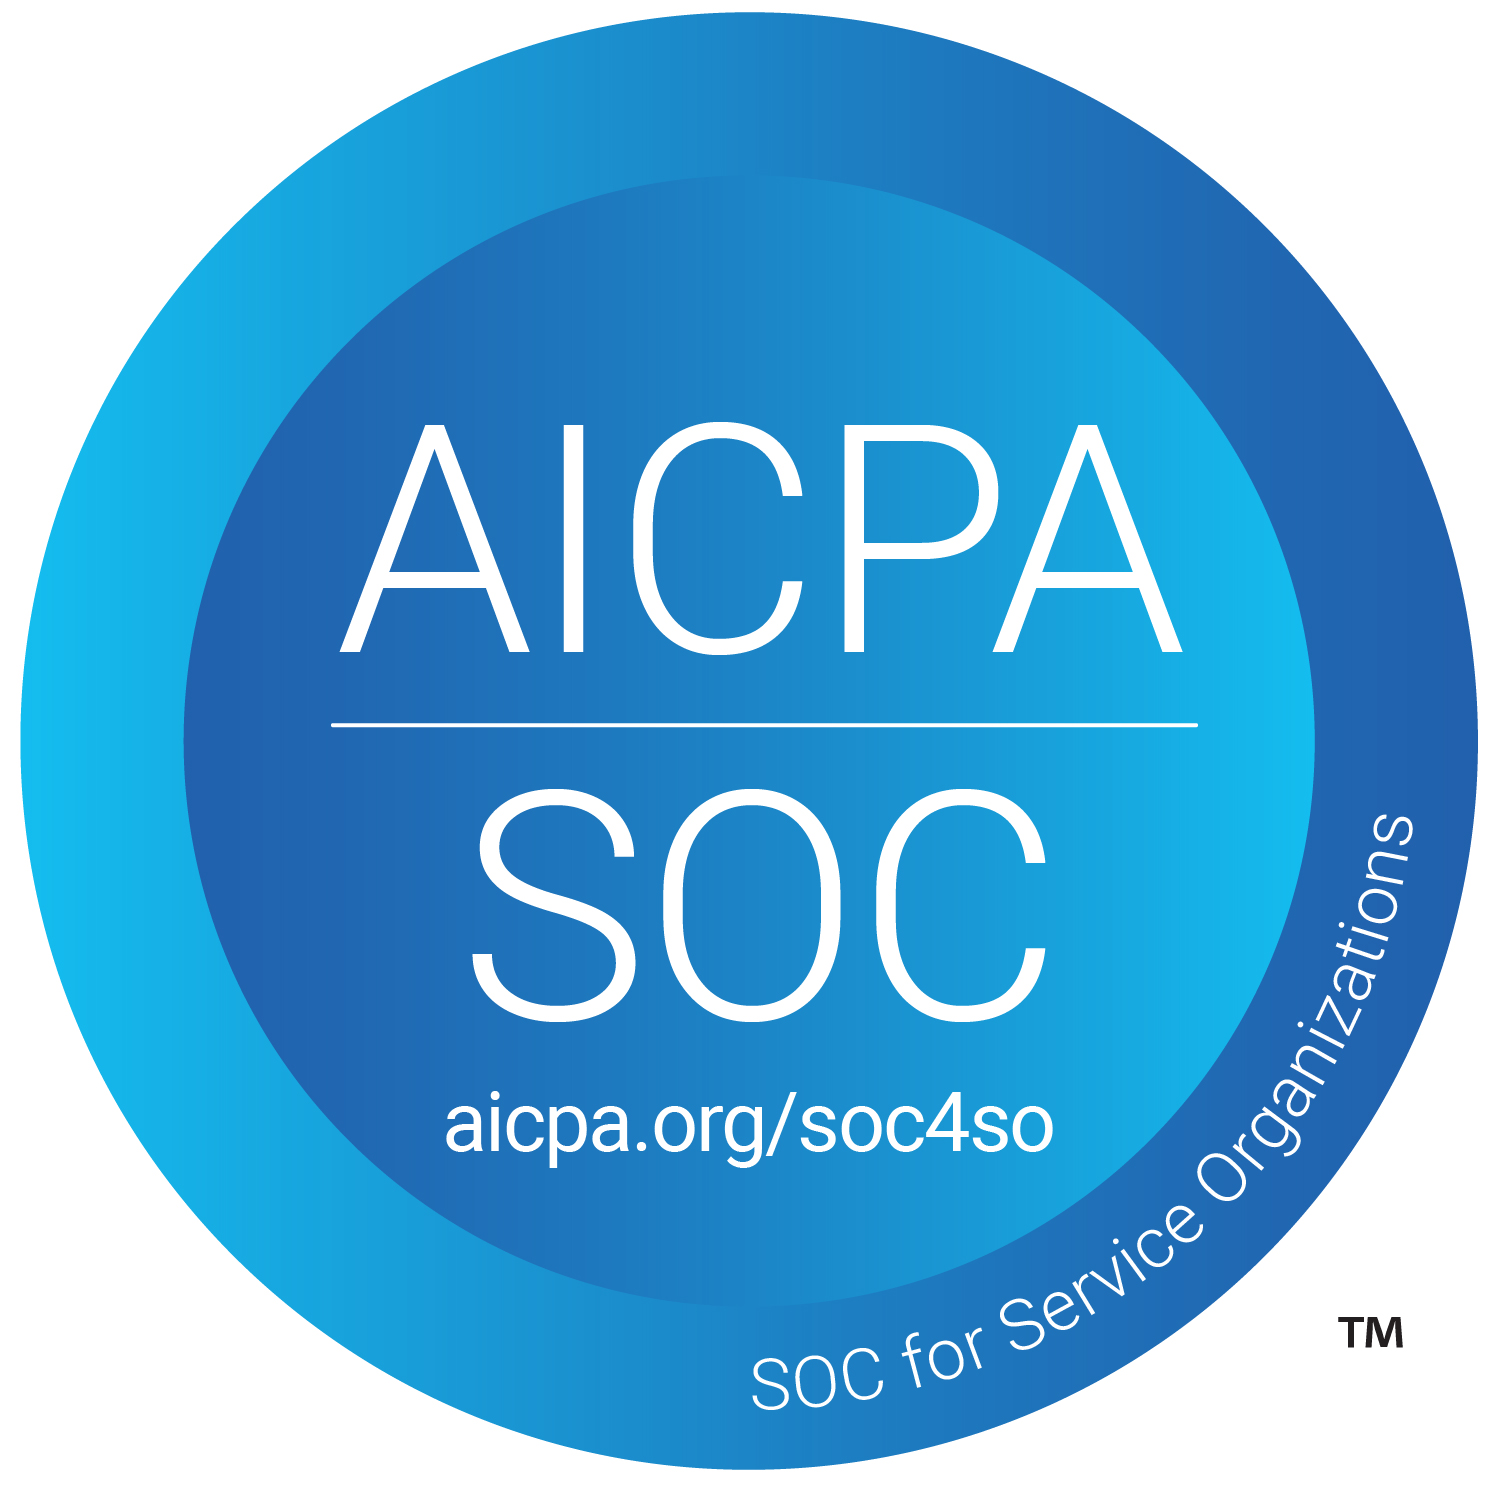 AICPA SOC logo, aicpa.org/soc4so, SOC for Service Organizations